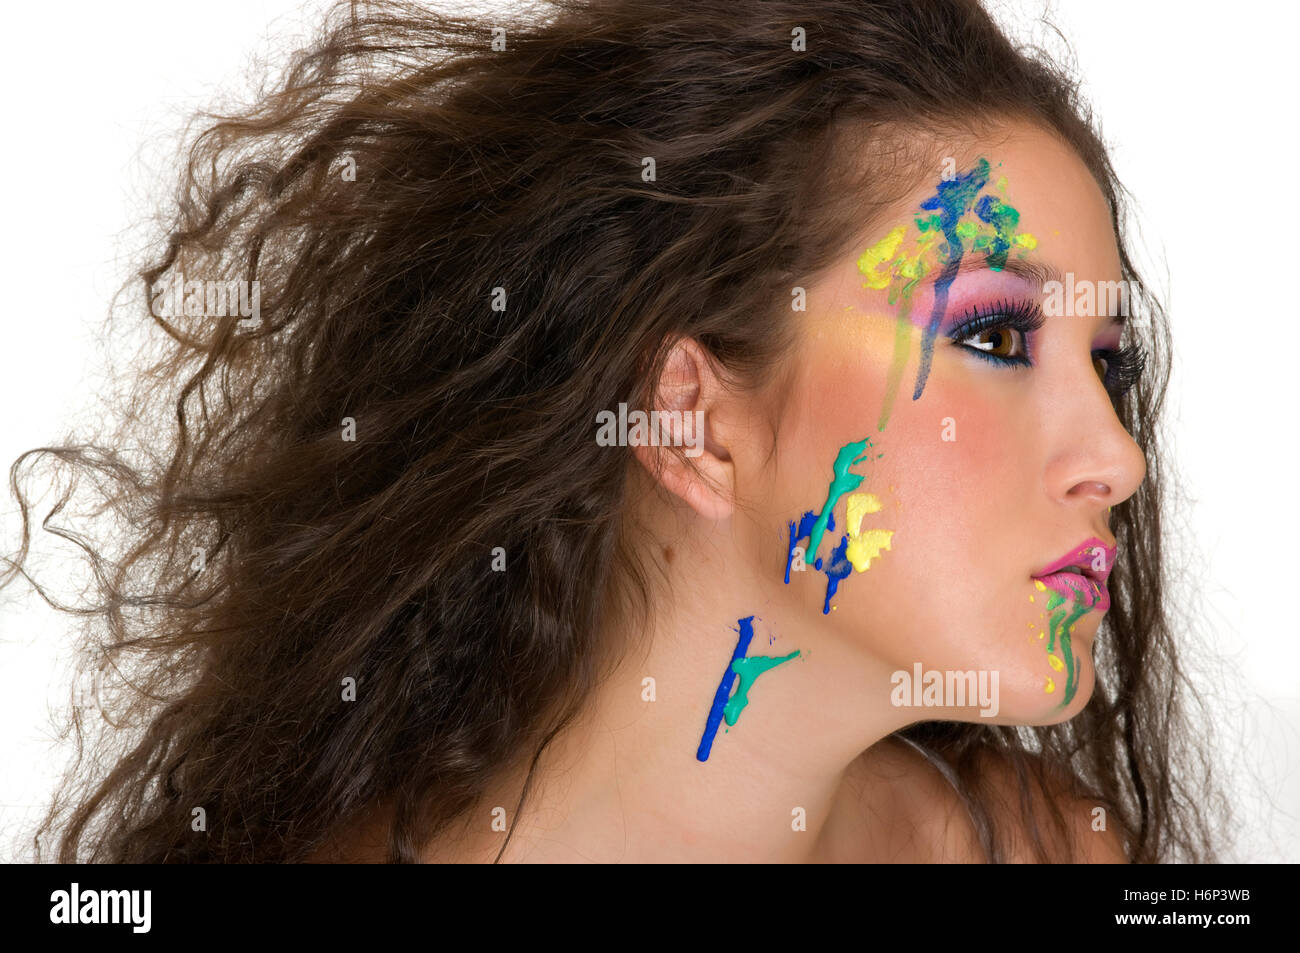 Art Models Stock Photos & Art Models Stock Images - Alamy